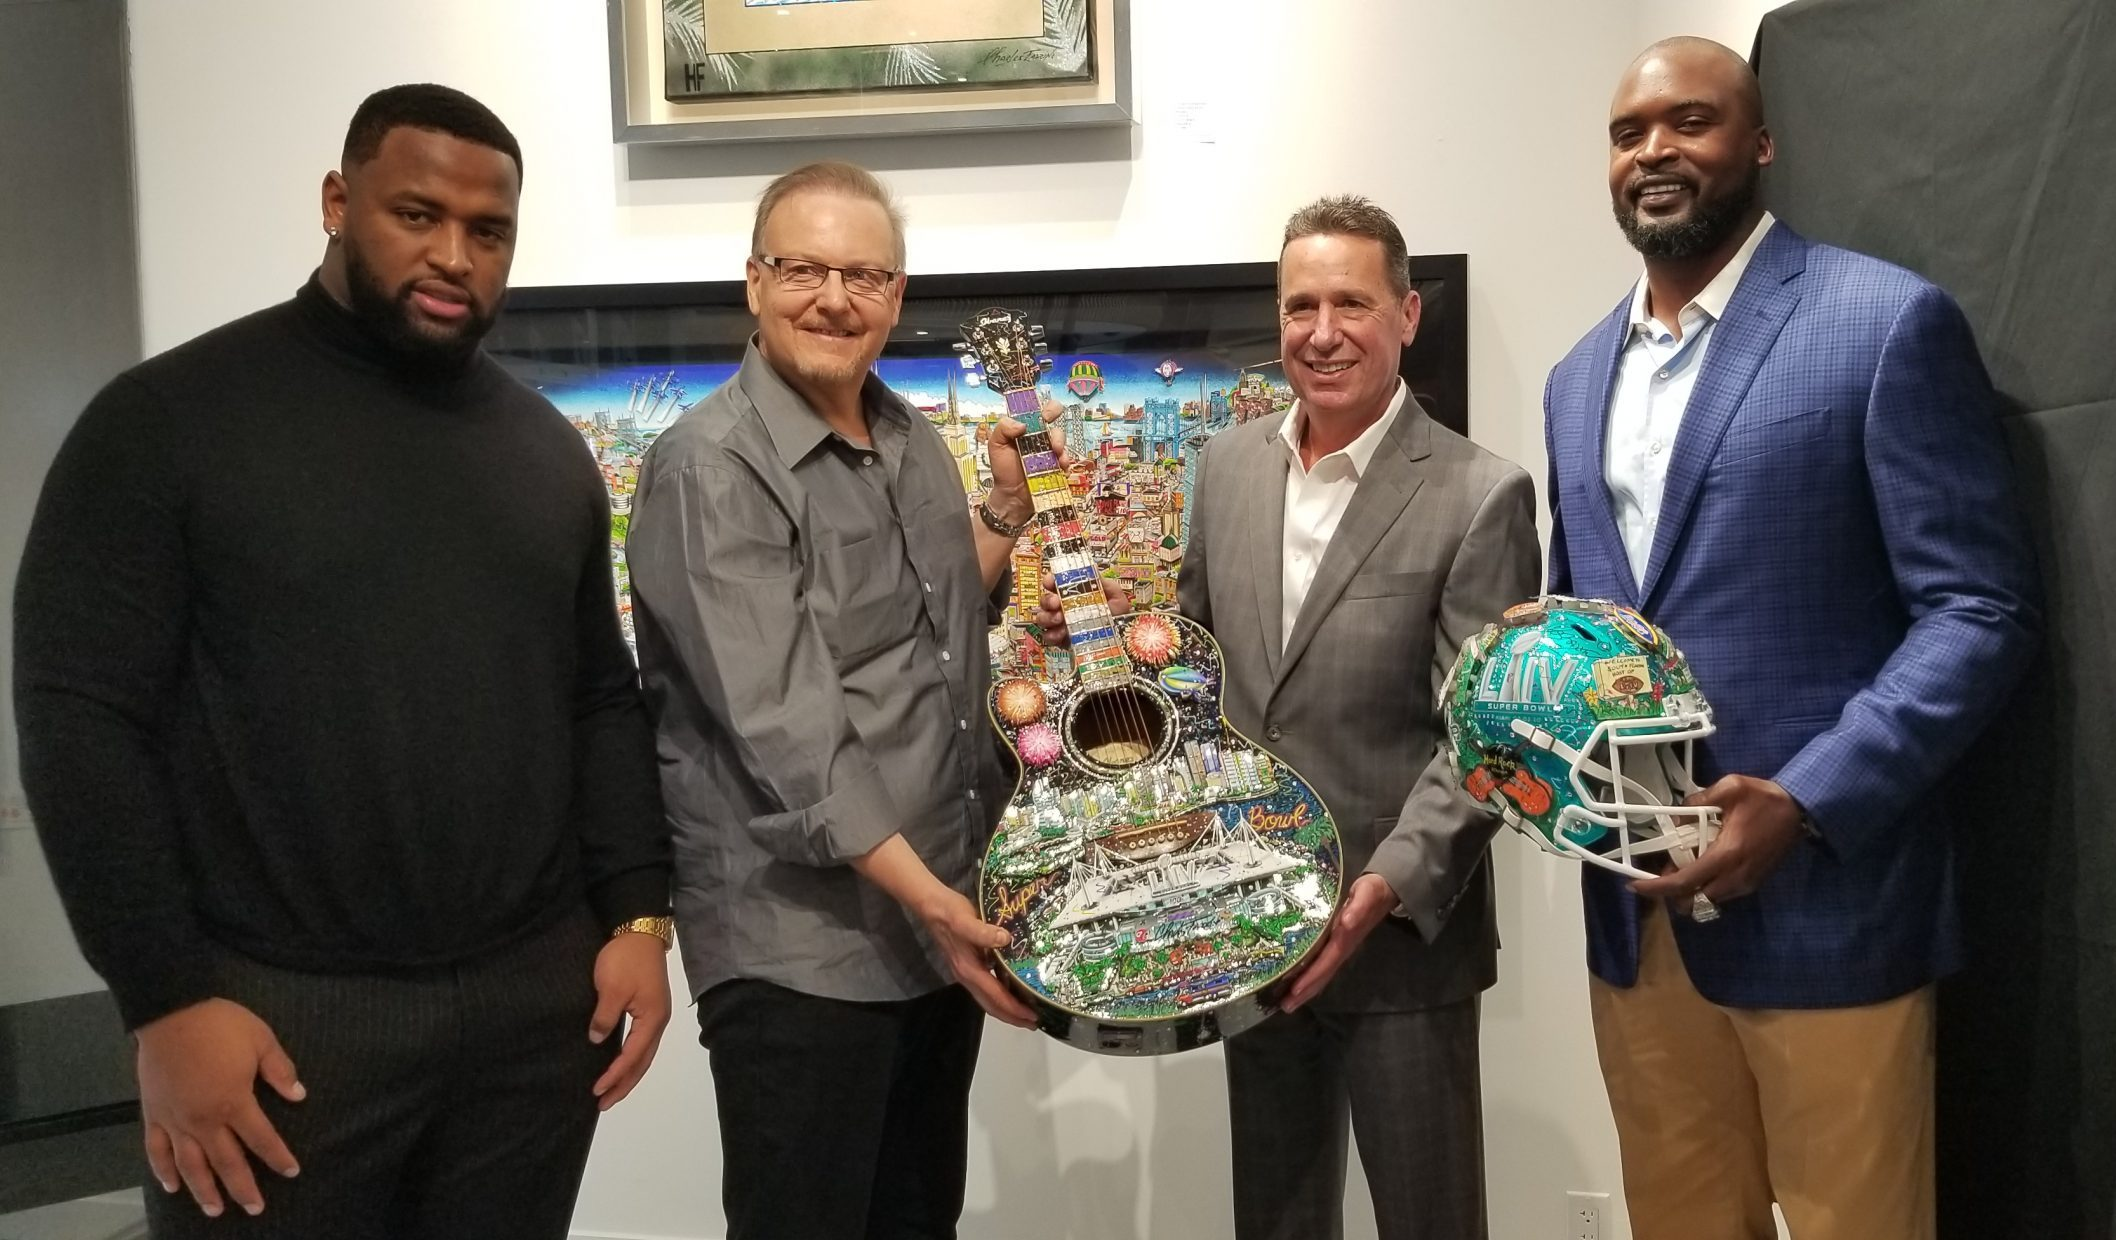 Posing with a Fazzino Super Bowl LIV guitar and helmet, from left to right: Miami Dolphin Davon Godchaux, President of the Hard Rock Hotel & Casino Bo Guidry, Former NY Giant Mathias Kiwanuka, and Charles Fazzino